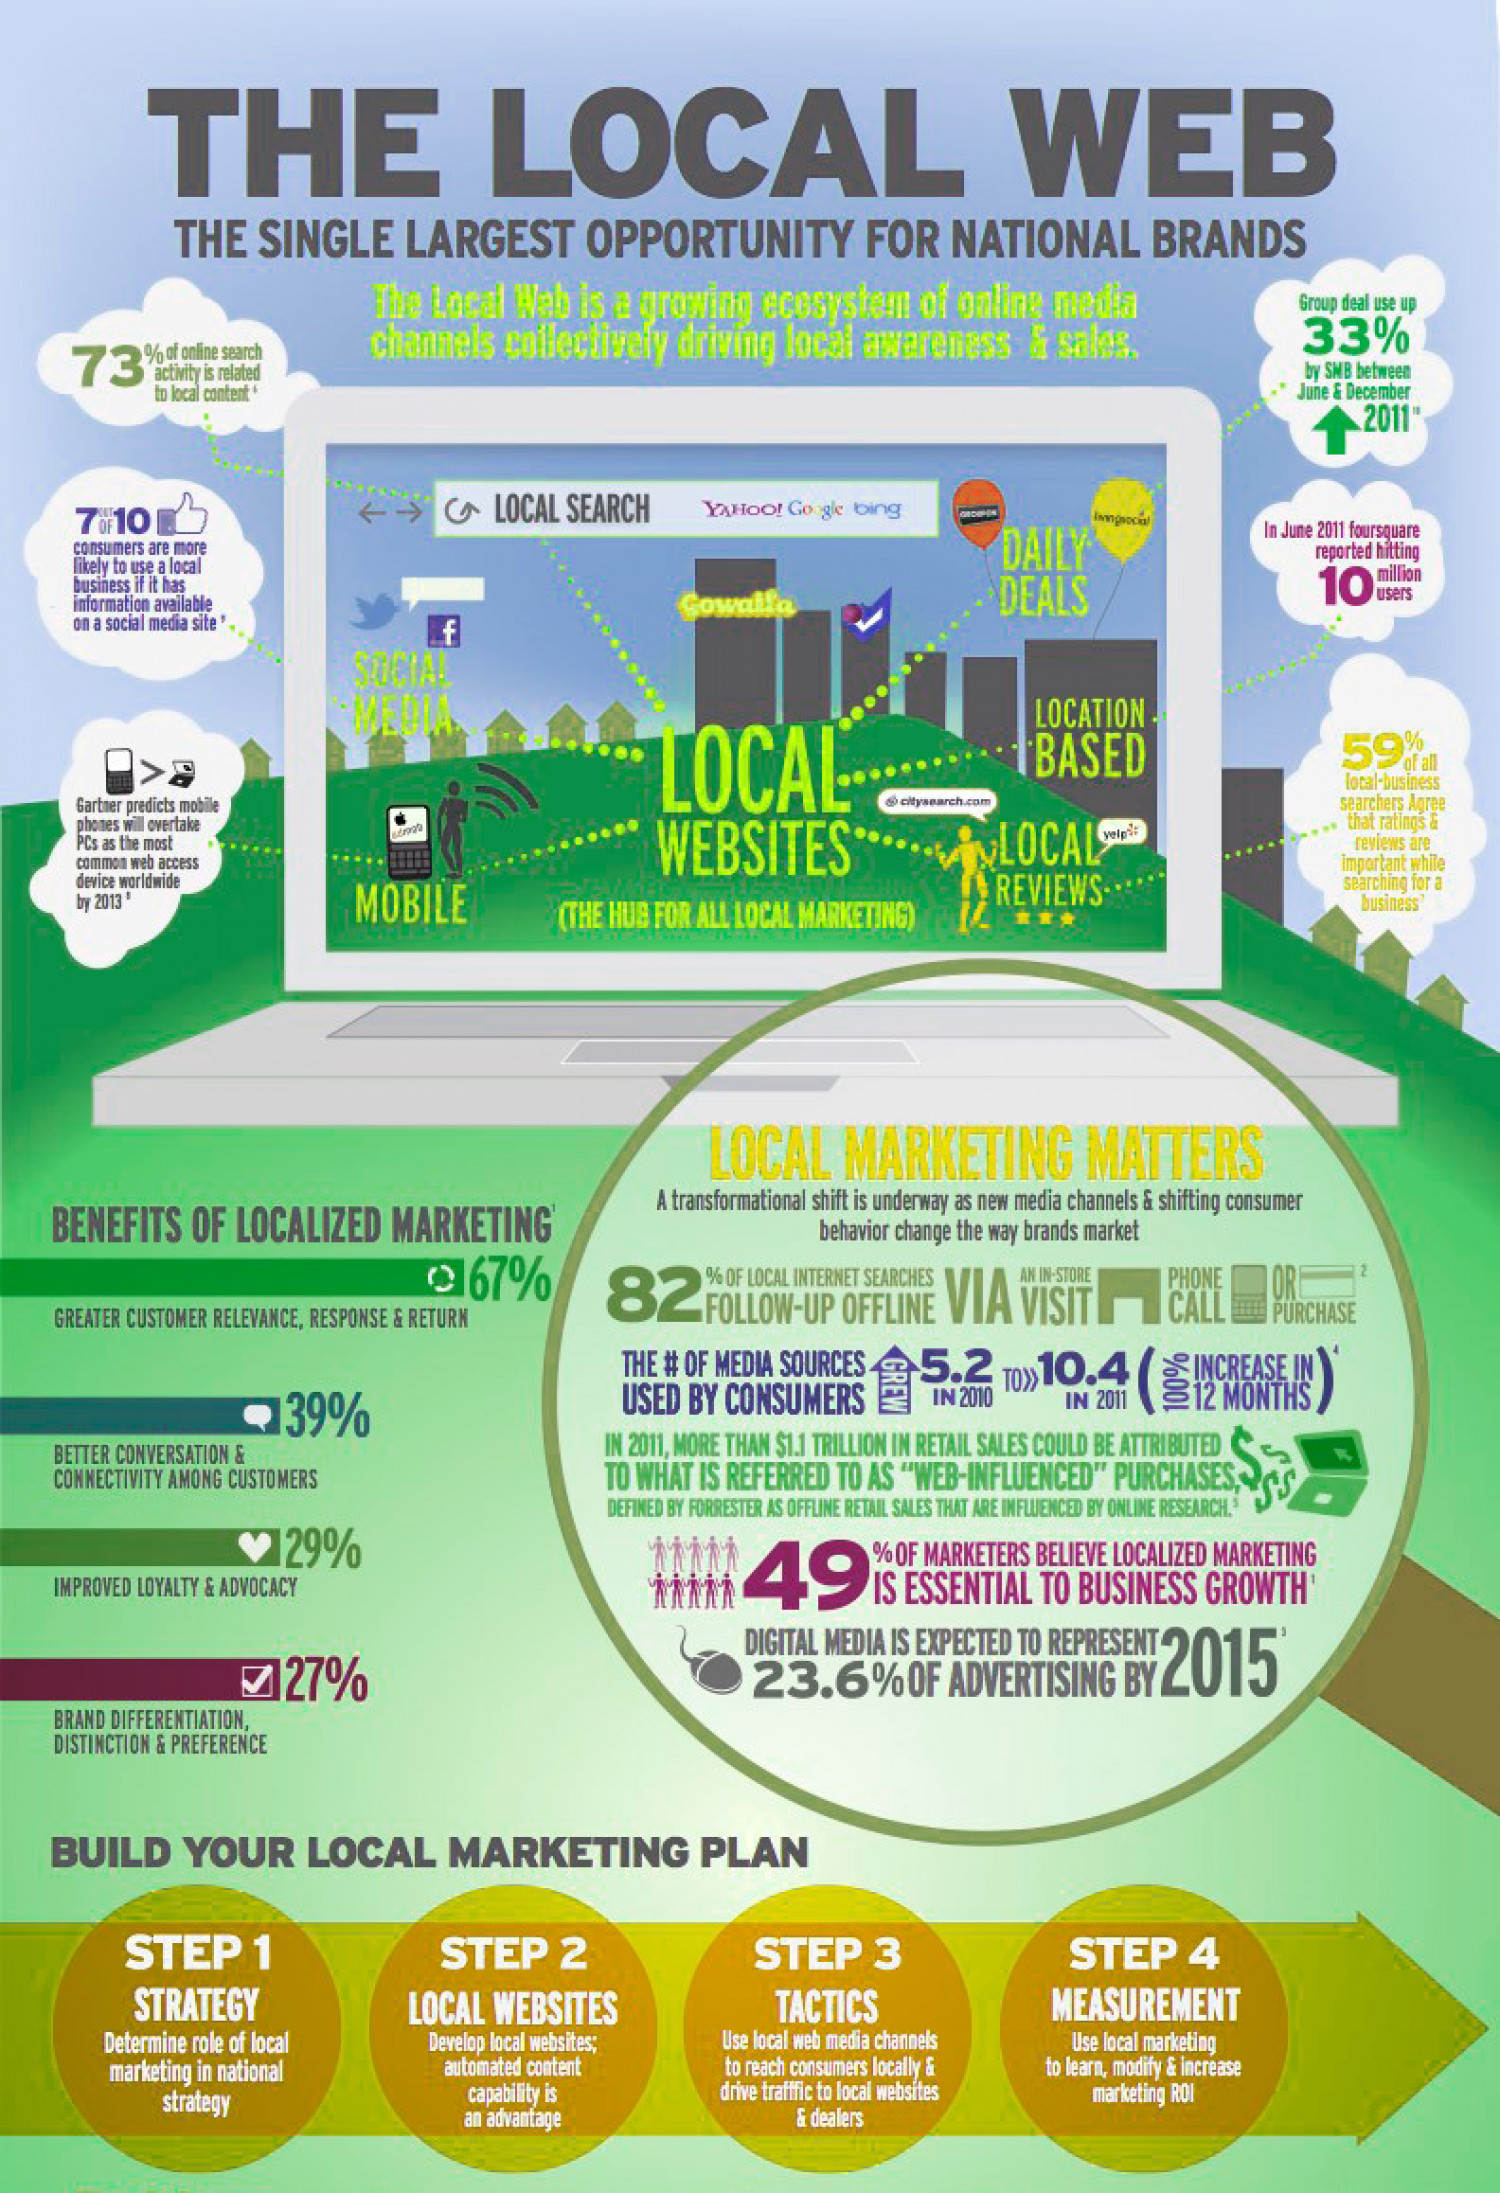 Ebriks-Local seo Infographic